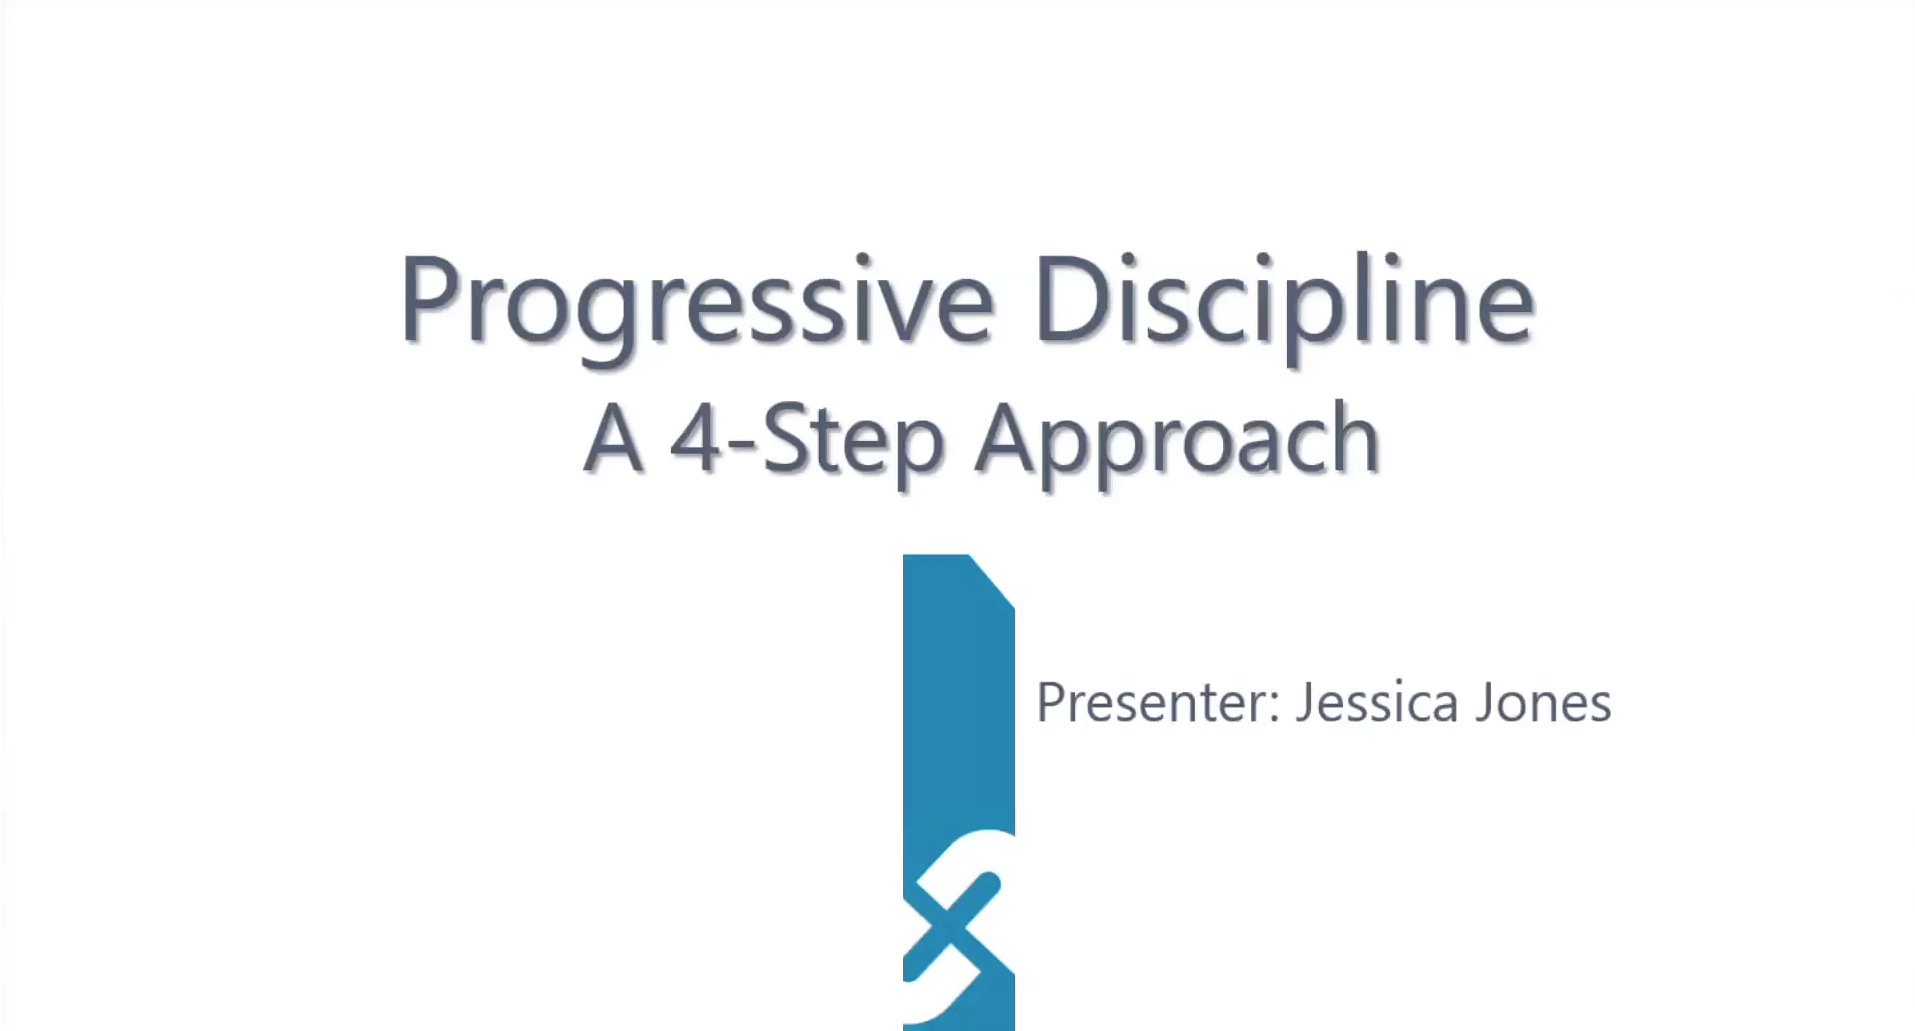 Progressive Discipline: A 4-Step Approach